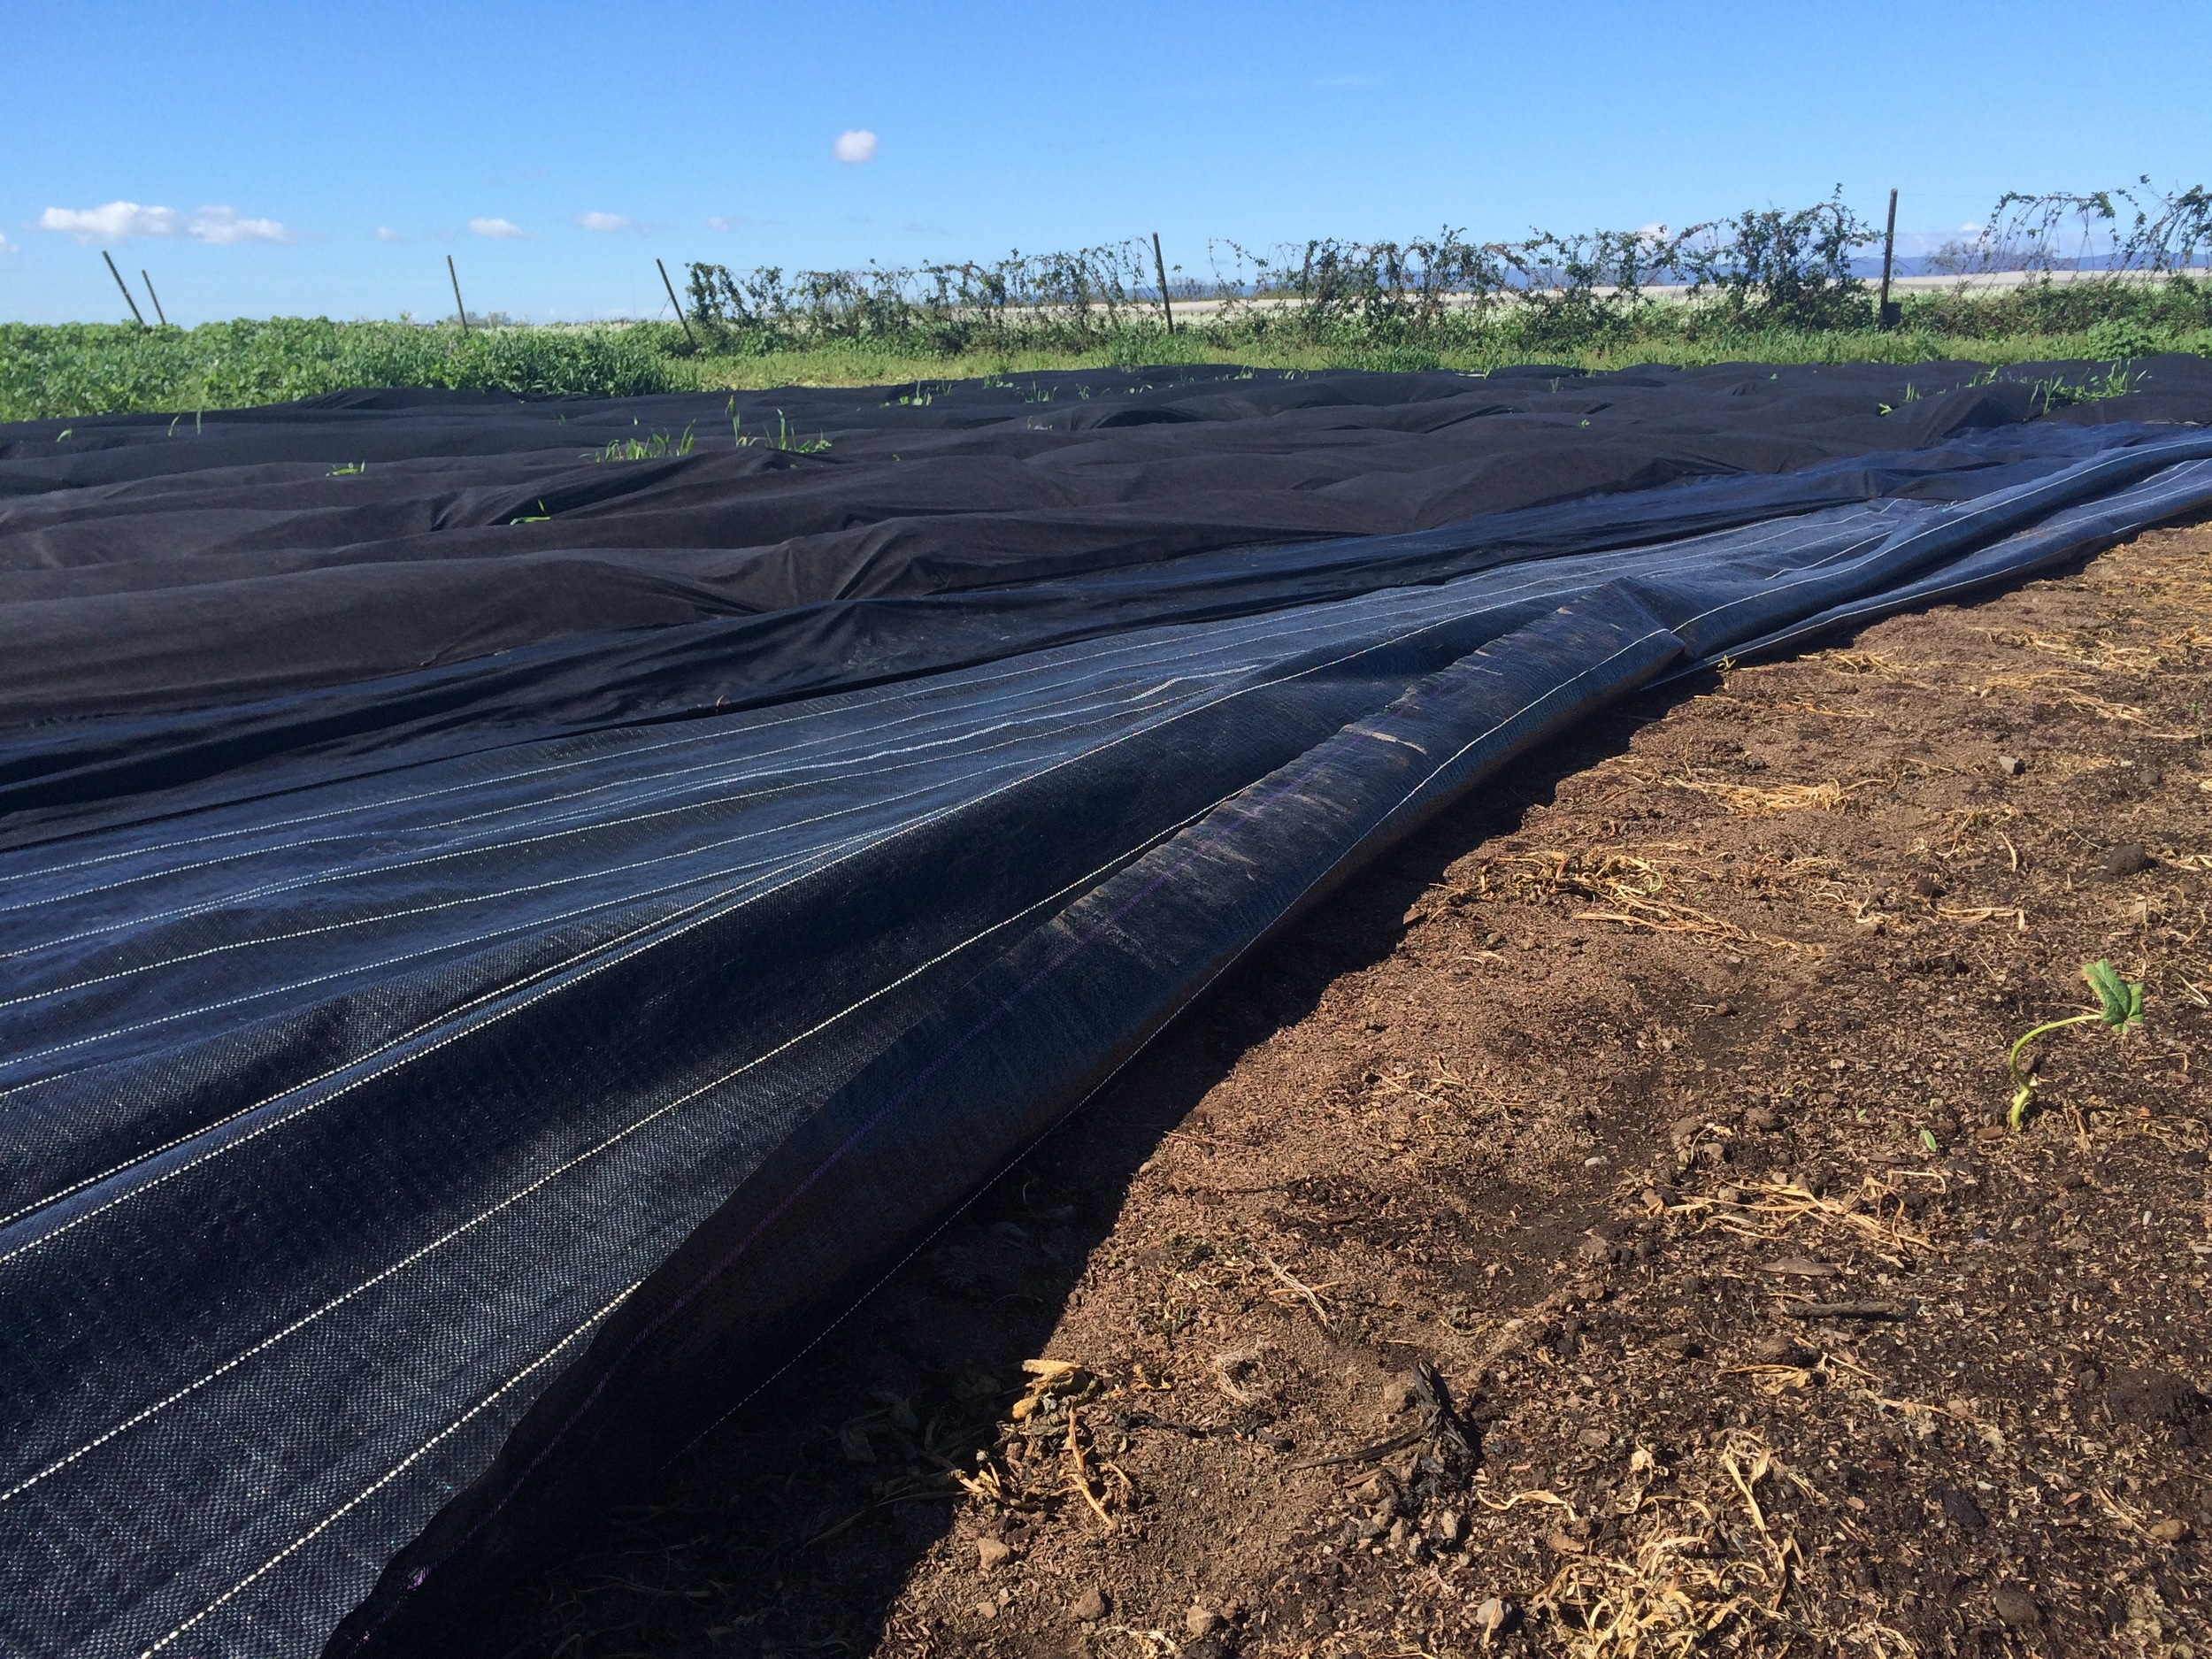 See that nice looking soil underneath the heavier cover? Now, further in the picture,see the lumps under the fabric barrier? Those are the weeds growing!